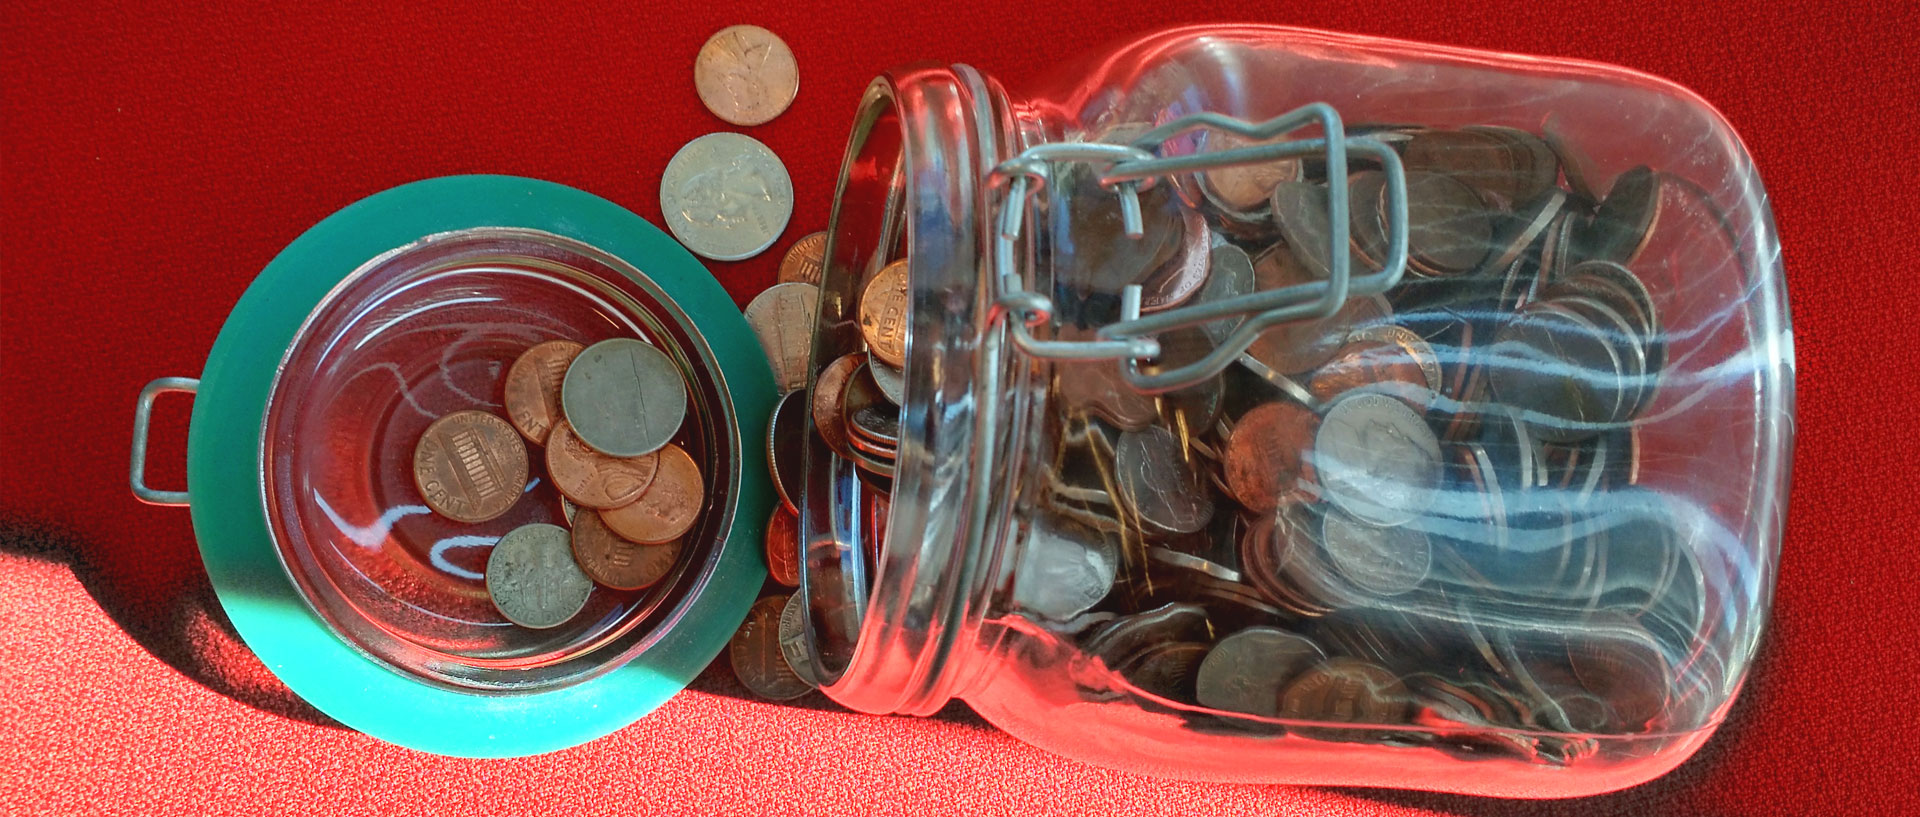 A New Way to Invest Your Spare Change